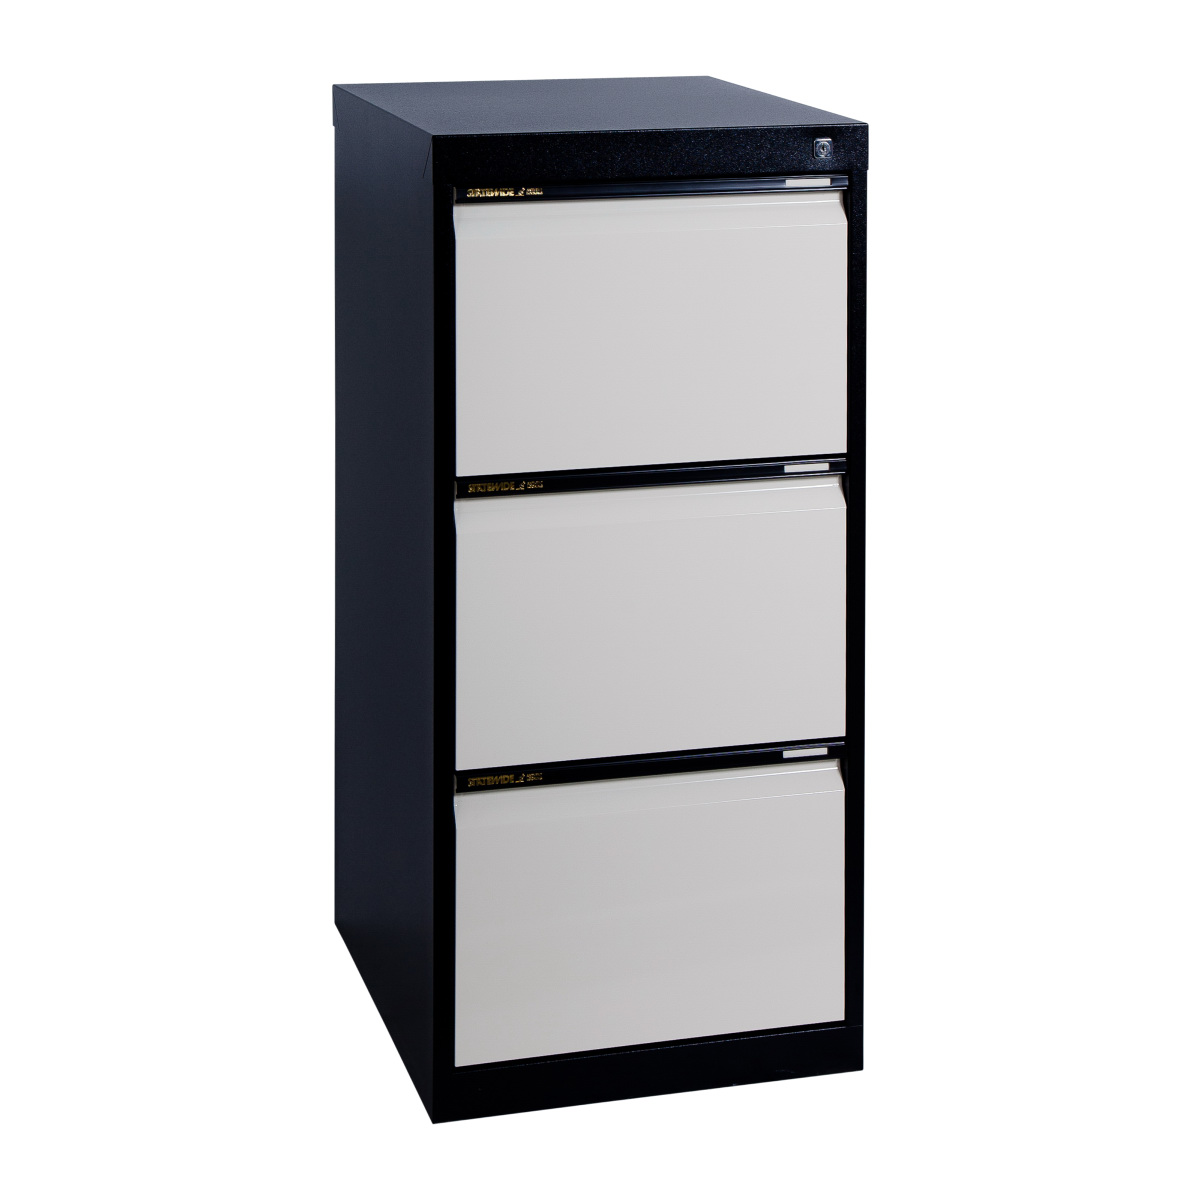 the container stow poppin file l white office s store filing drawers cabinets slim drawer carts cabinet